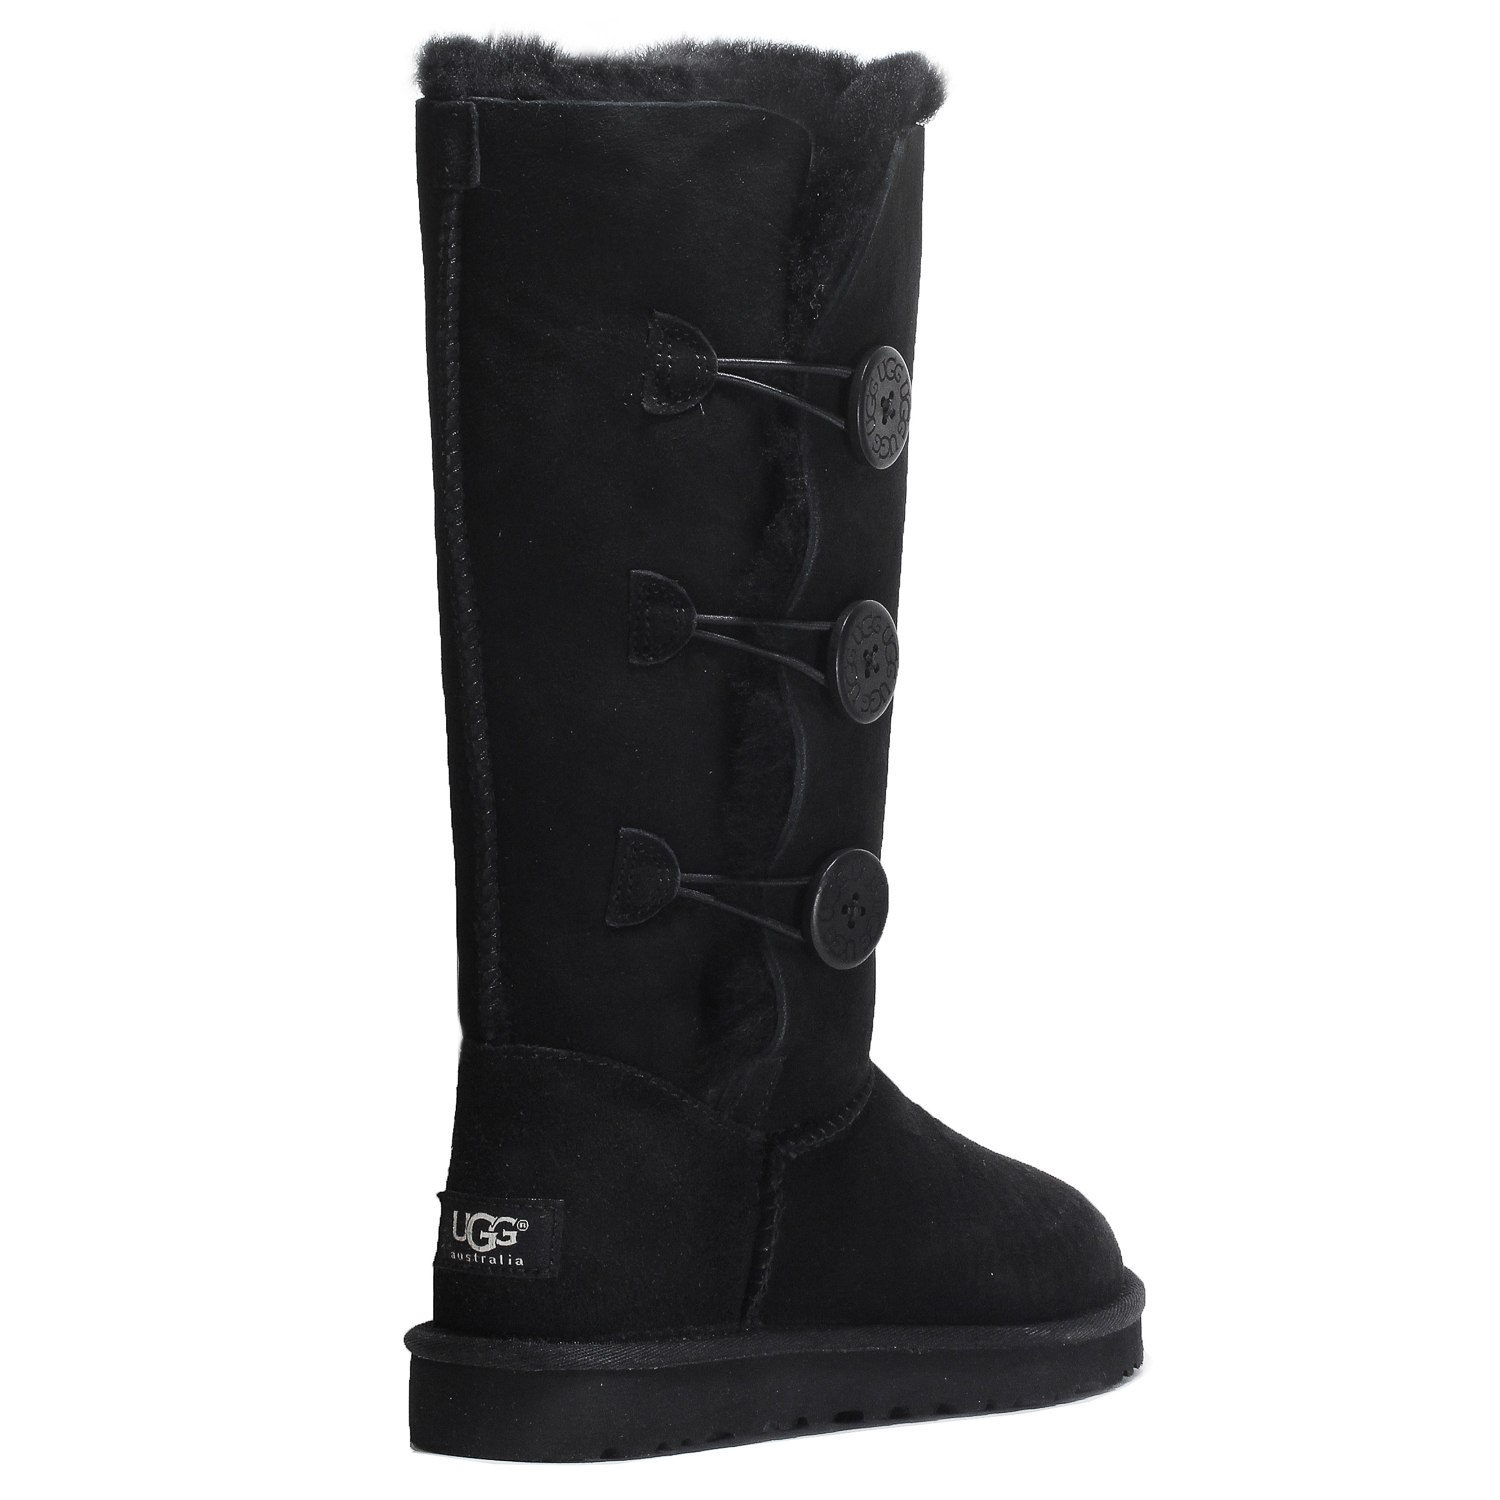 245be57c234 discount ugg 1873 black history 5a994 96915